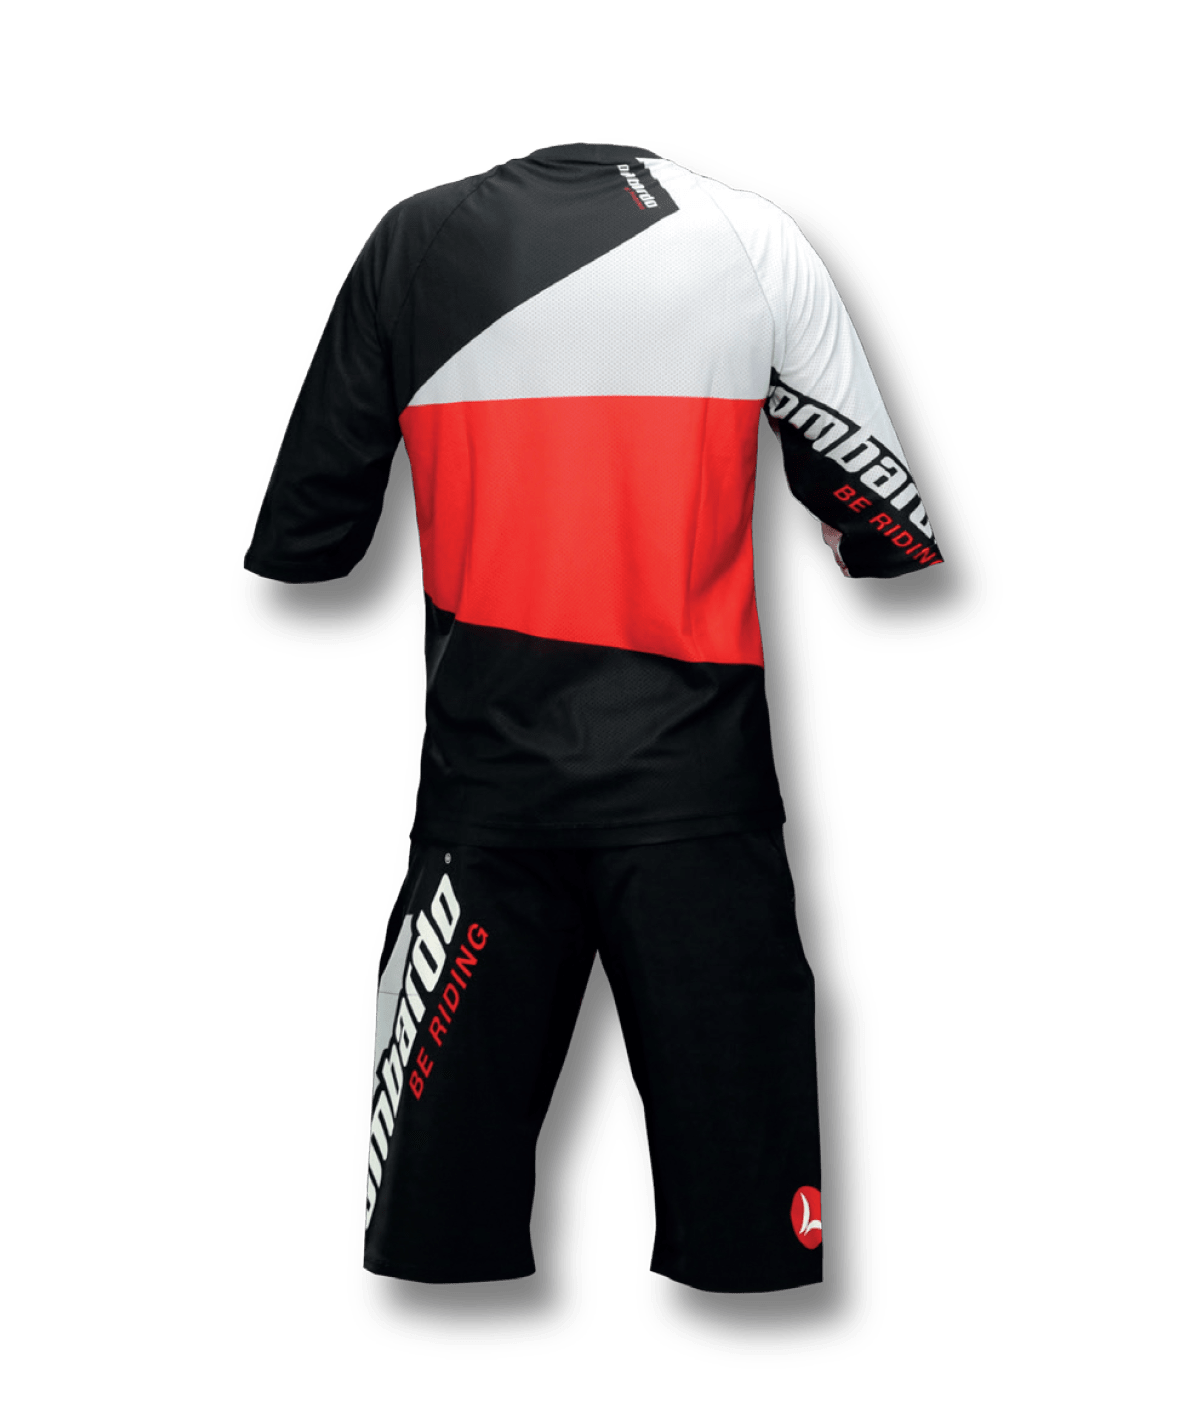 Enduro Apparel